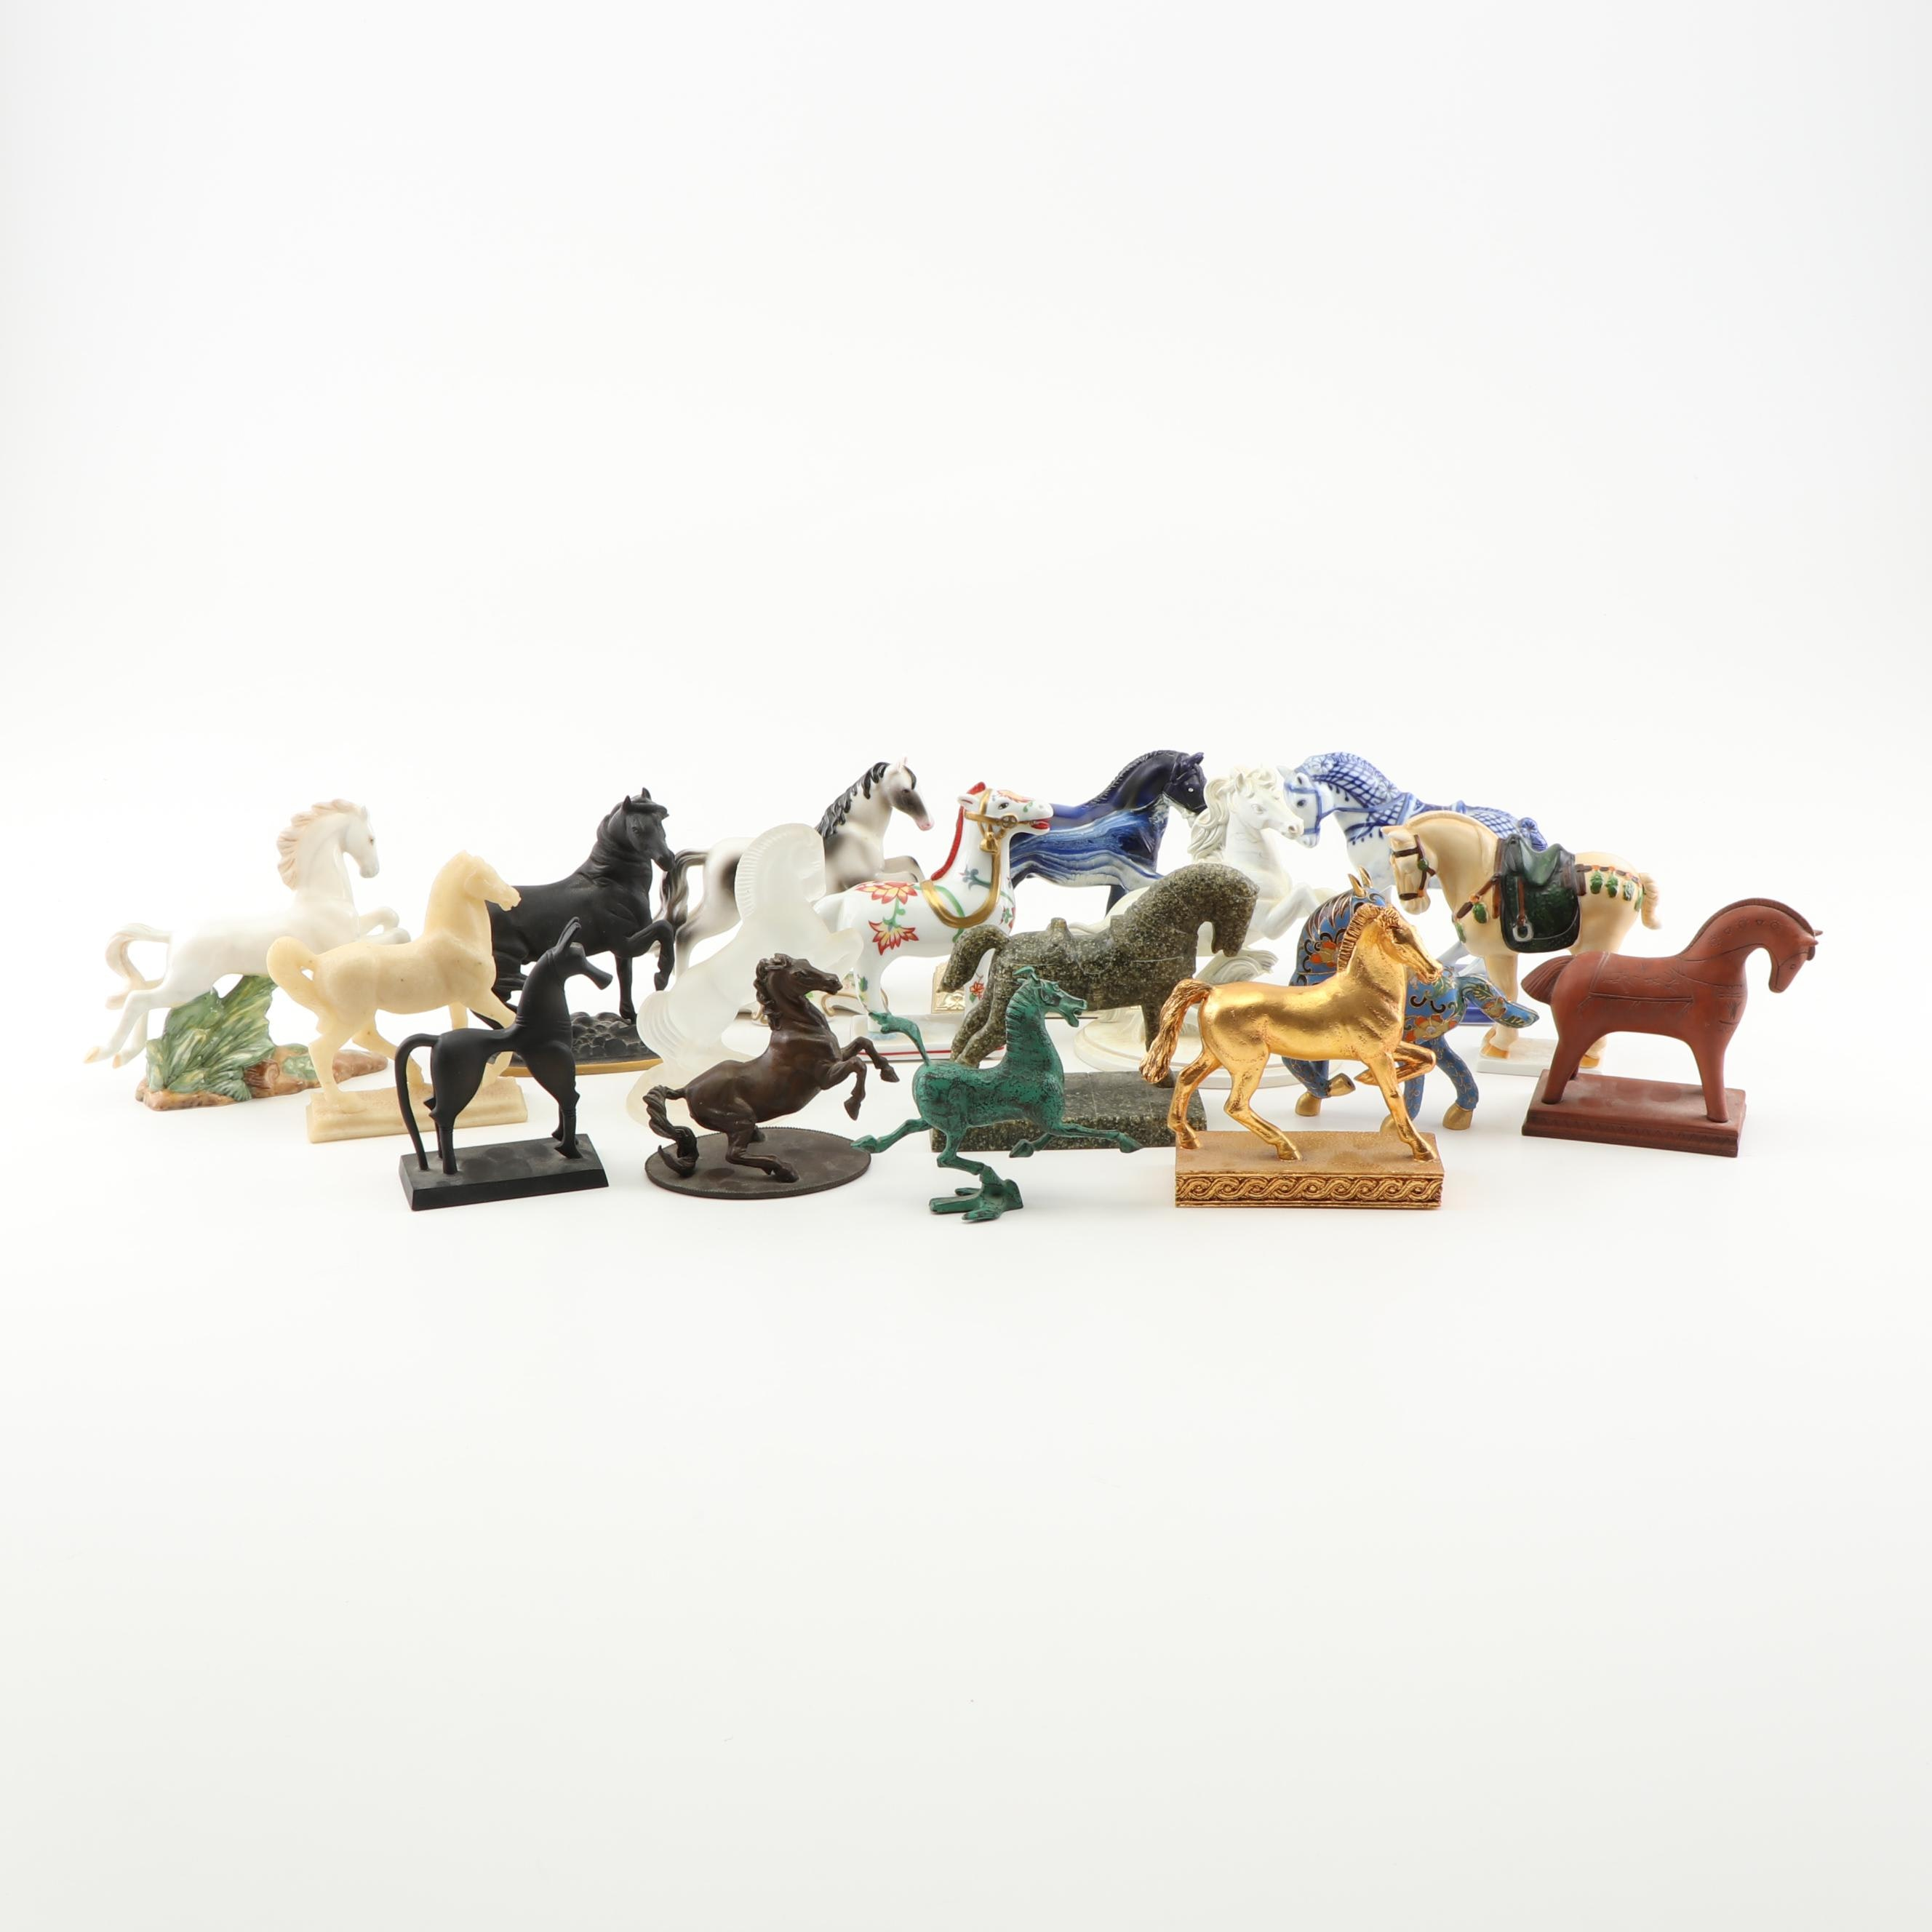 Franklin Mint Curator's Collection of Classic Horse Sculptures, Mid-Century